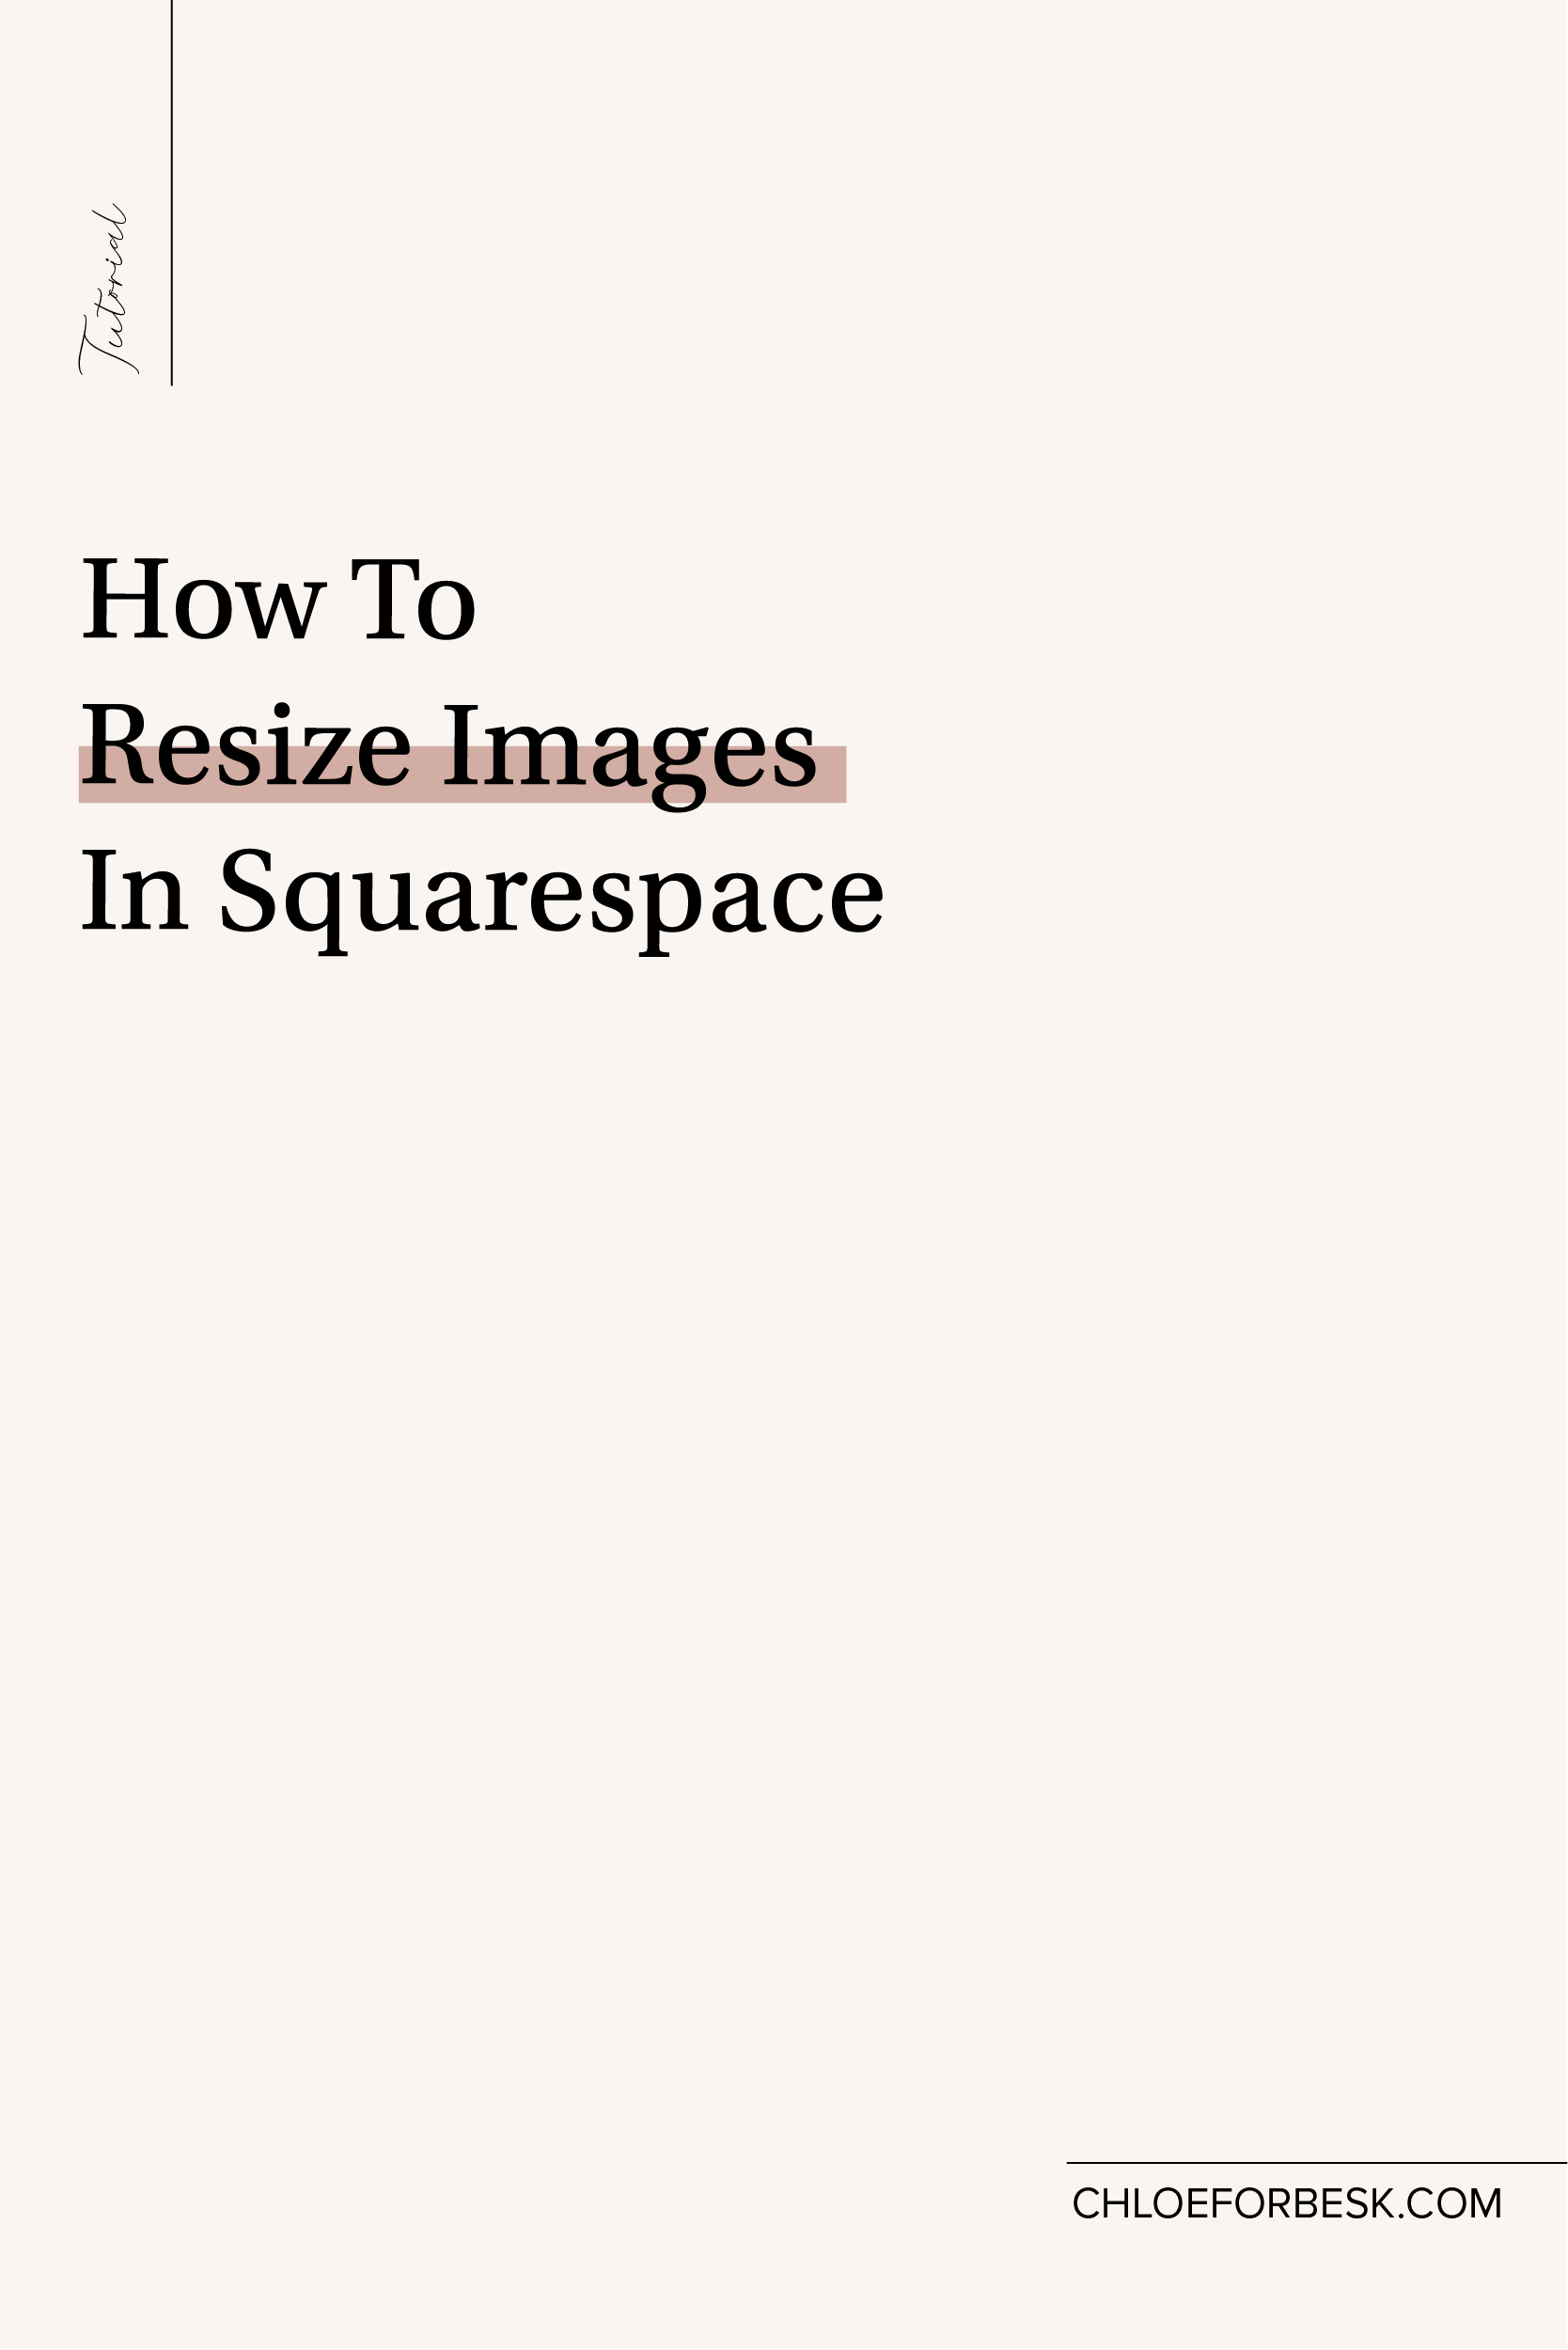 How To Resize Images In Squarespace-02.png